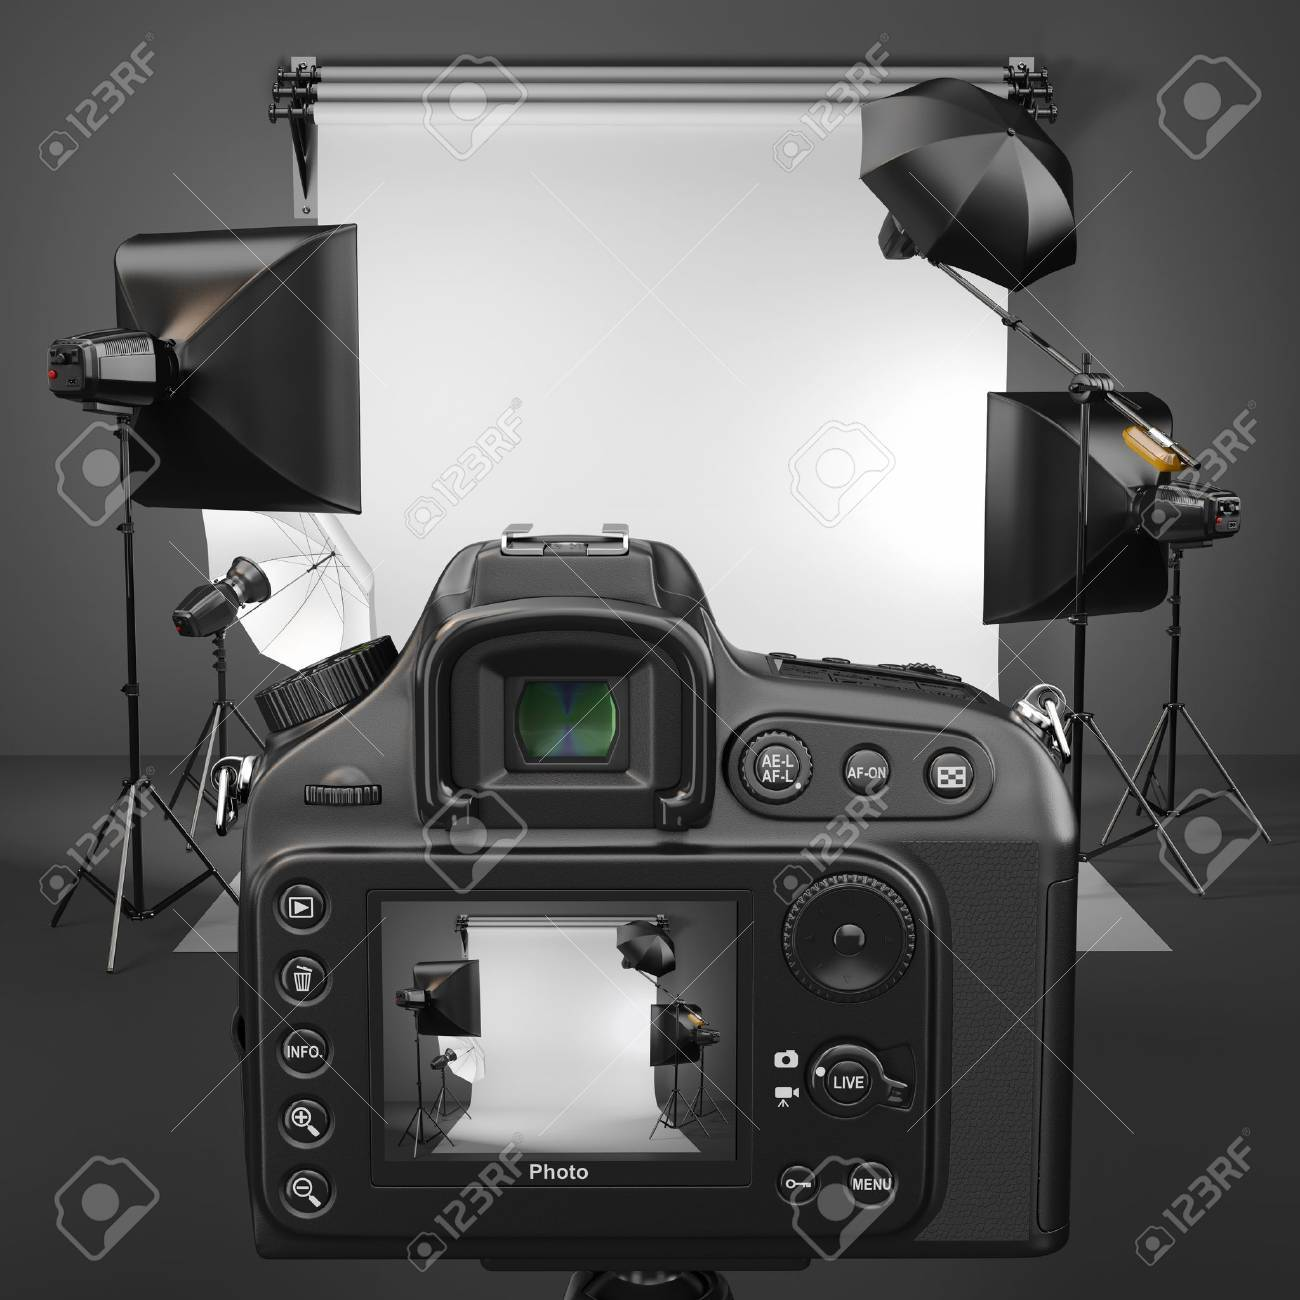 Digital photo camera in studio with soft box and flashes Stock Photo - 20622605